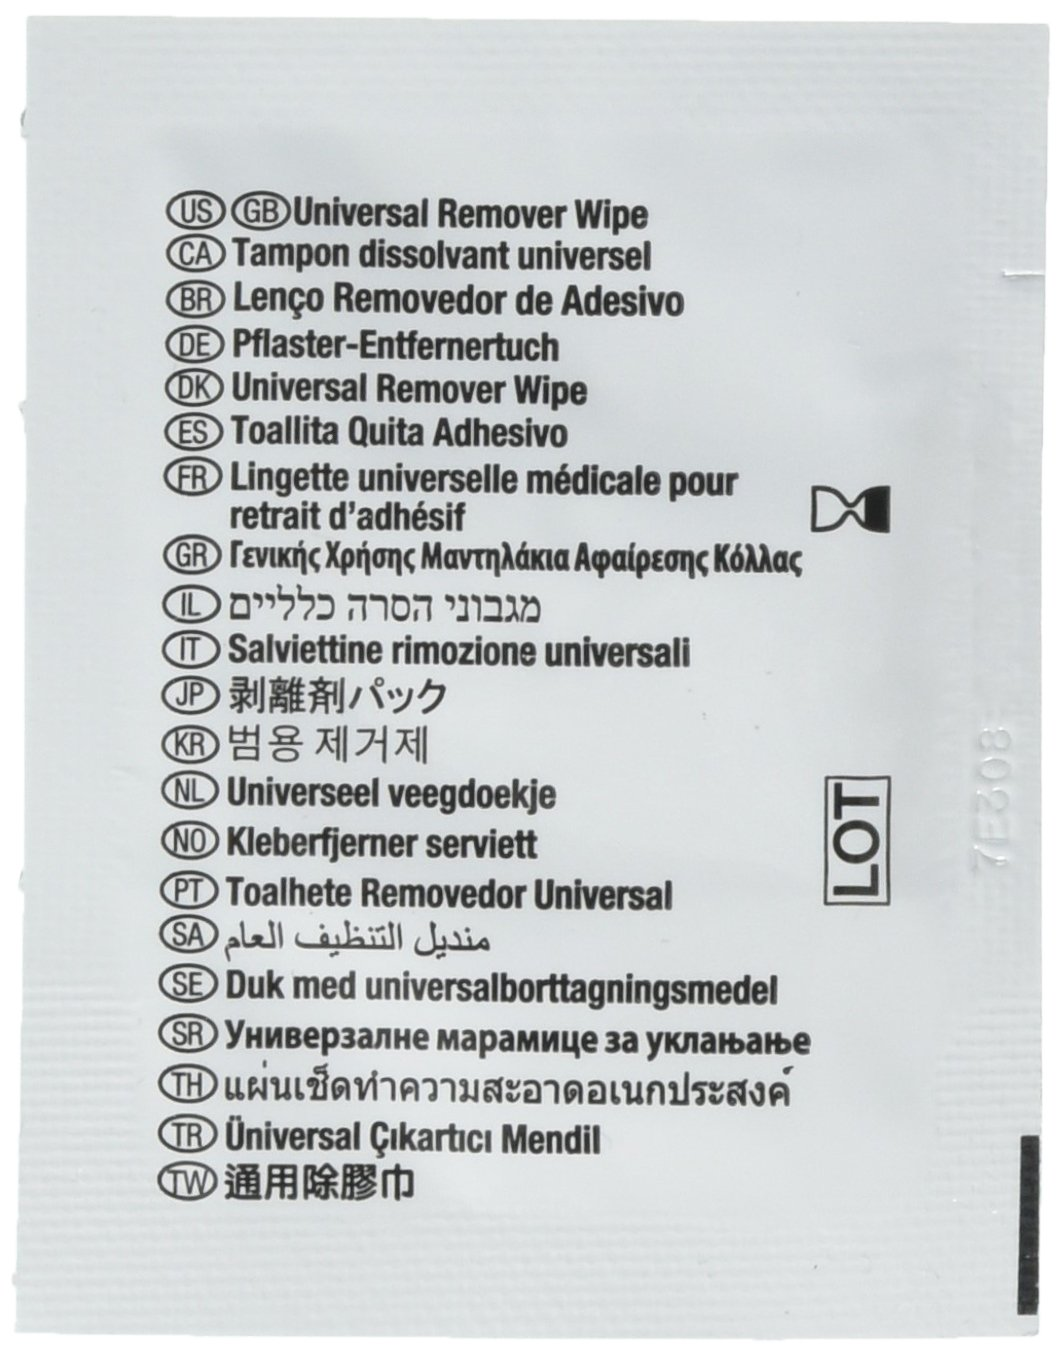 Image Of Adhesive & Barrier Remover Wipes, Box of 50